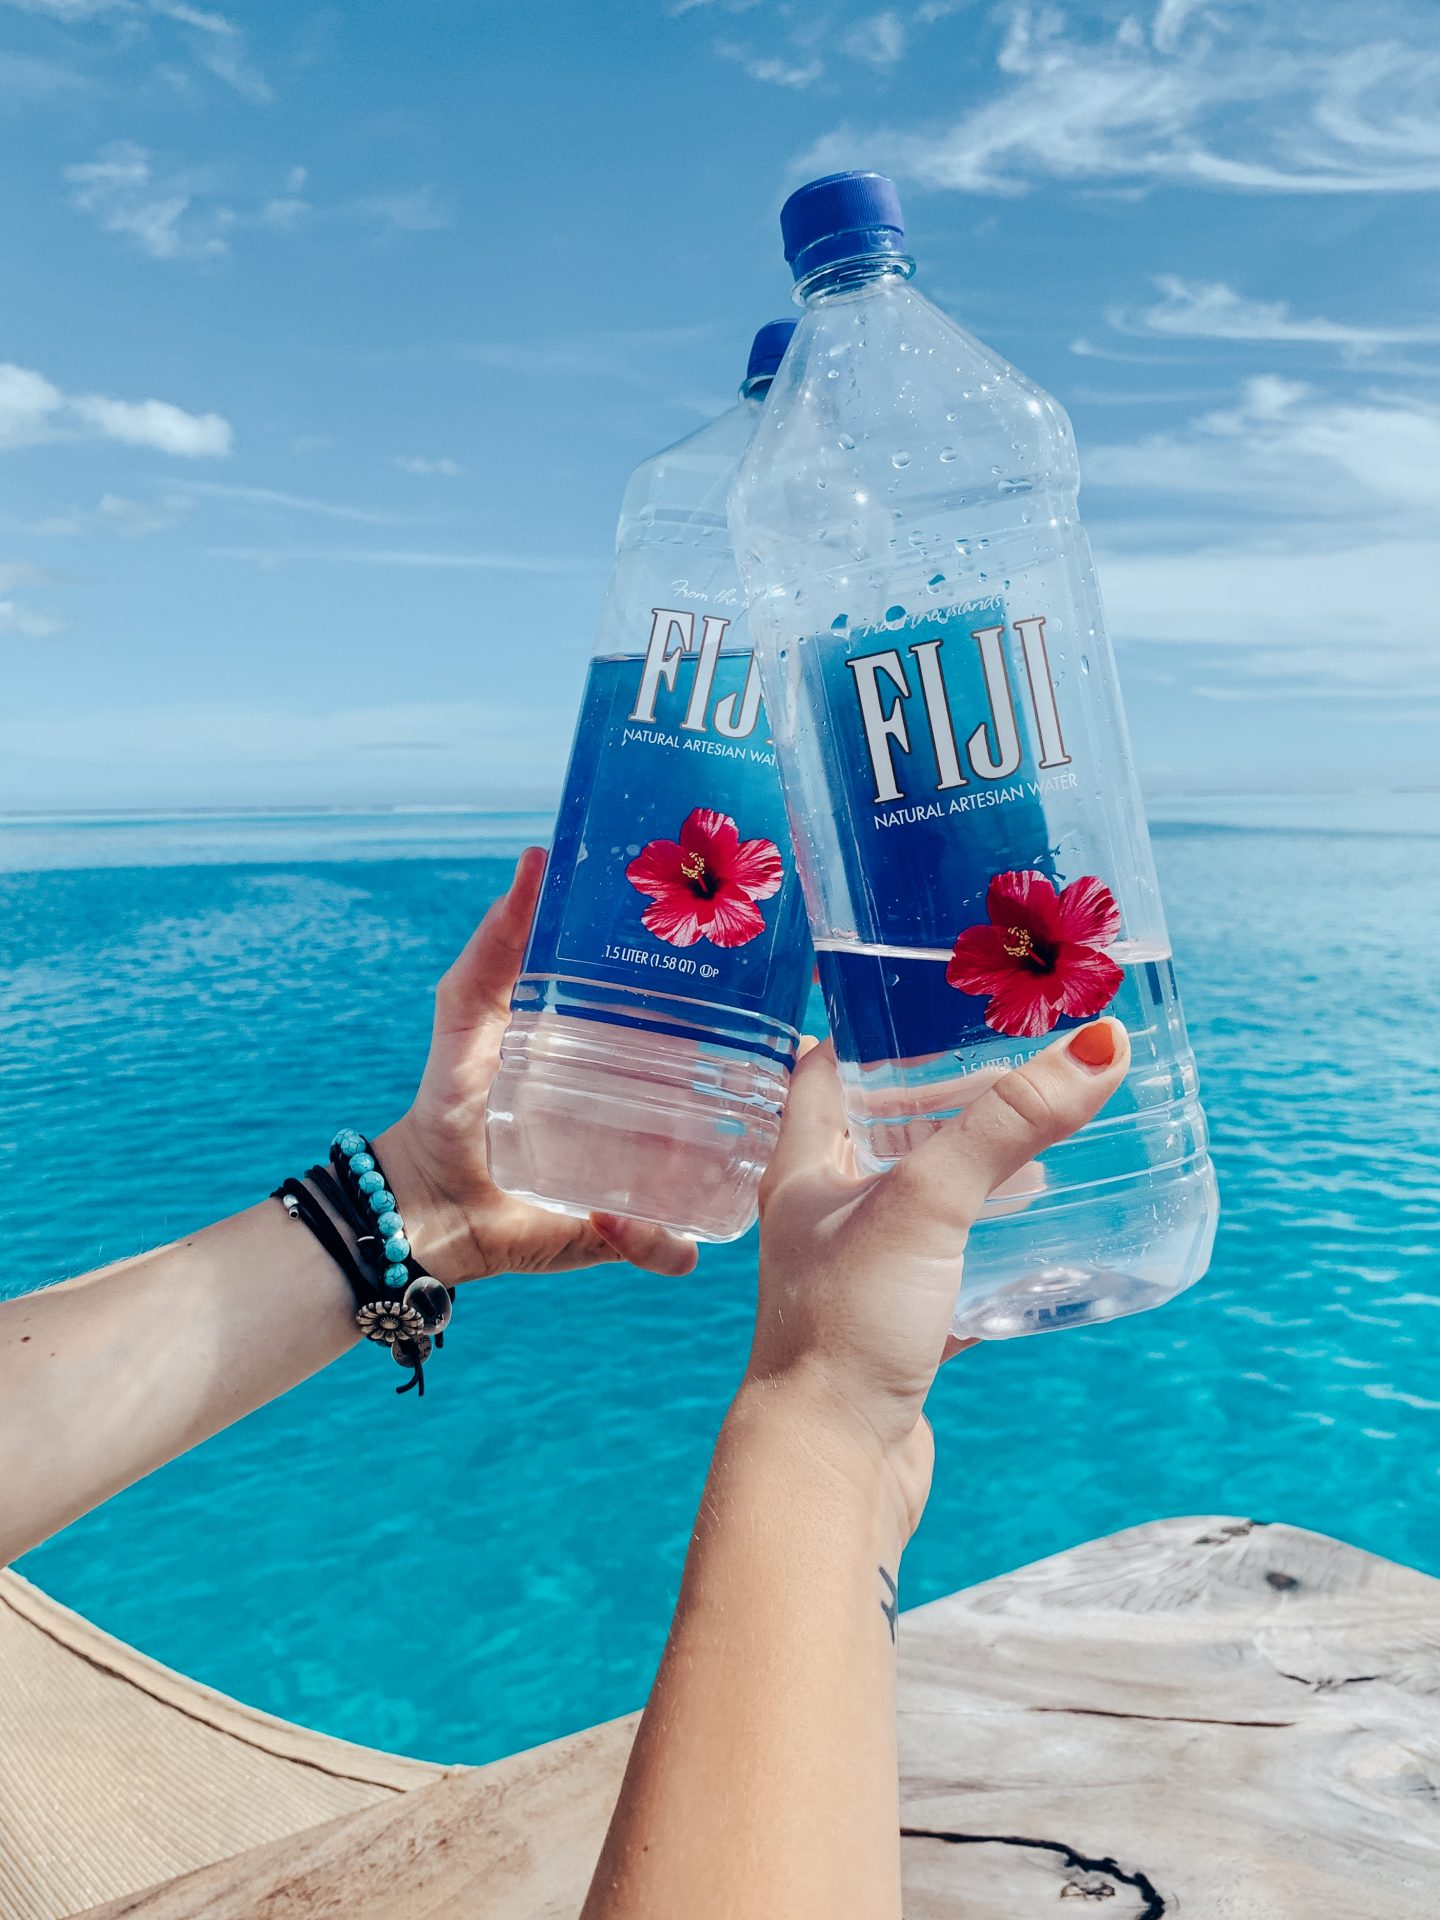 Drinking Fiji water overlooking the crystal clear blue waters of Fiji!